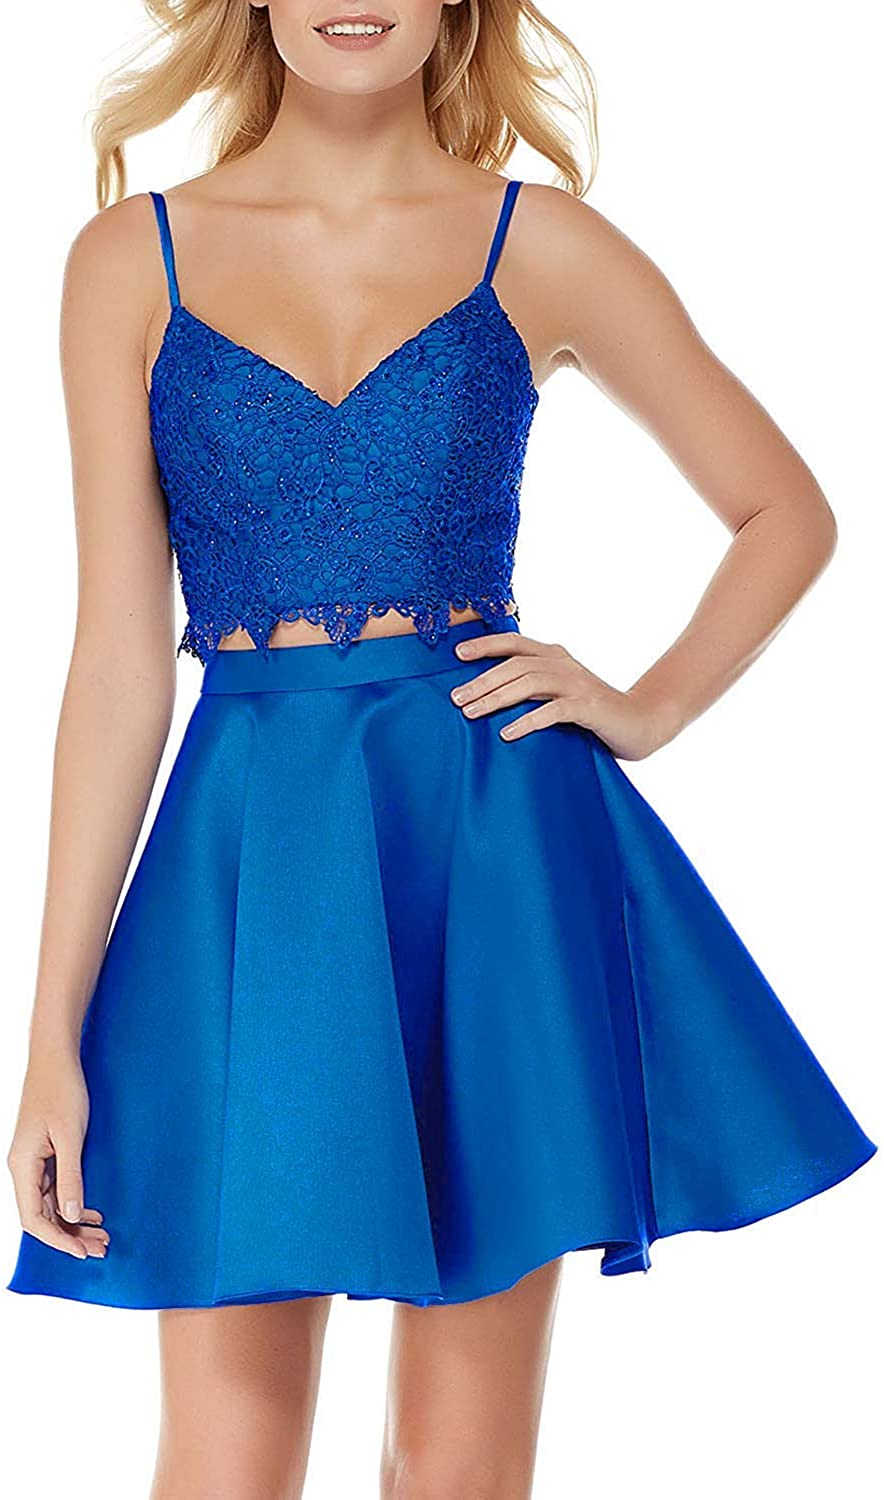 Sulidi Women's A Line V Neck Homecoming Dresses 2018 Short Two Piece Prom Gowns Elegant Satin Sexy Skirt C014